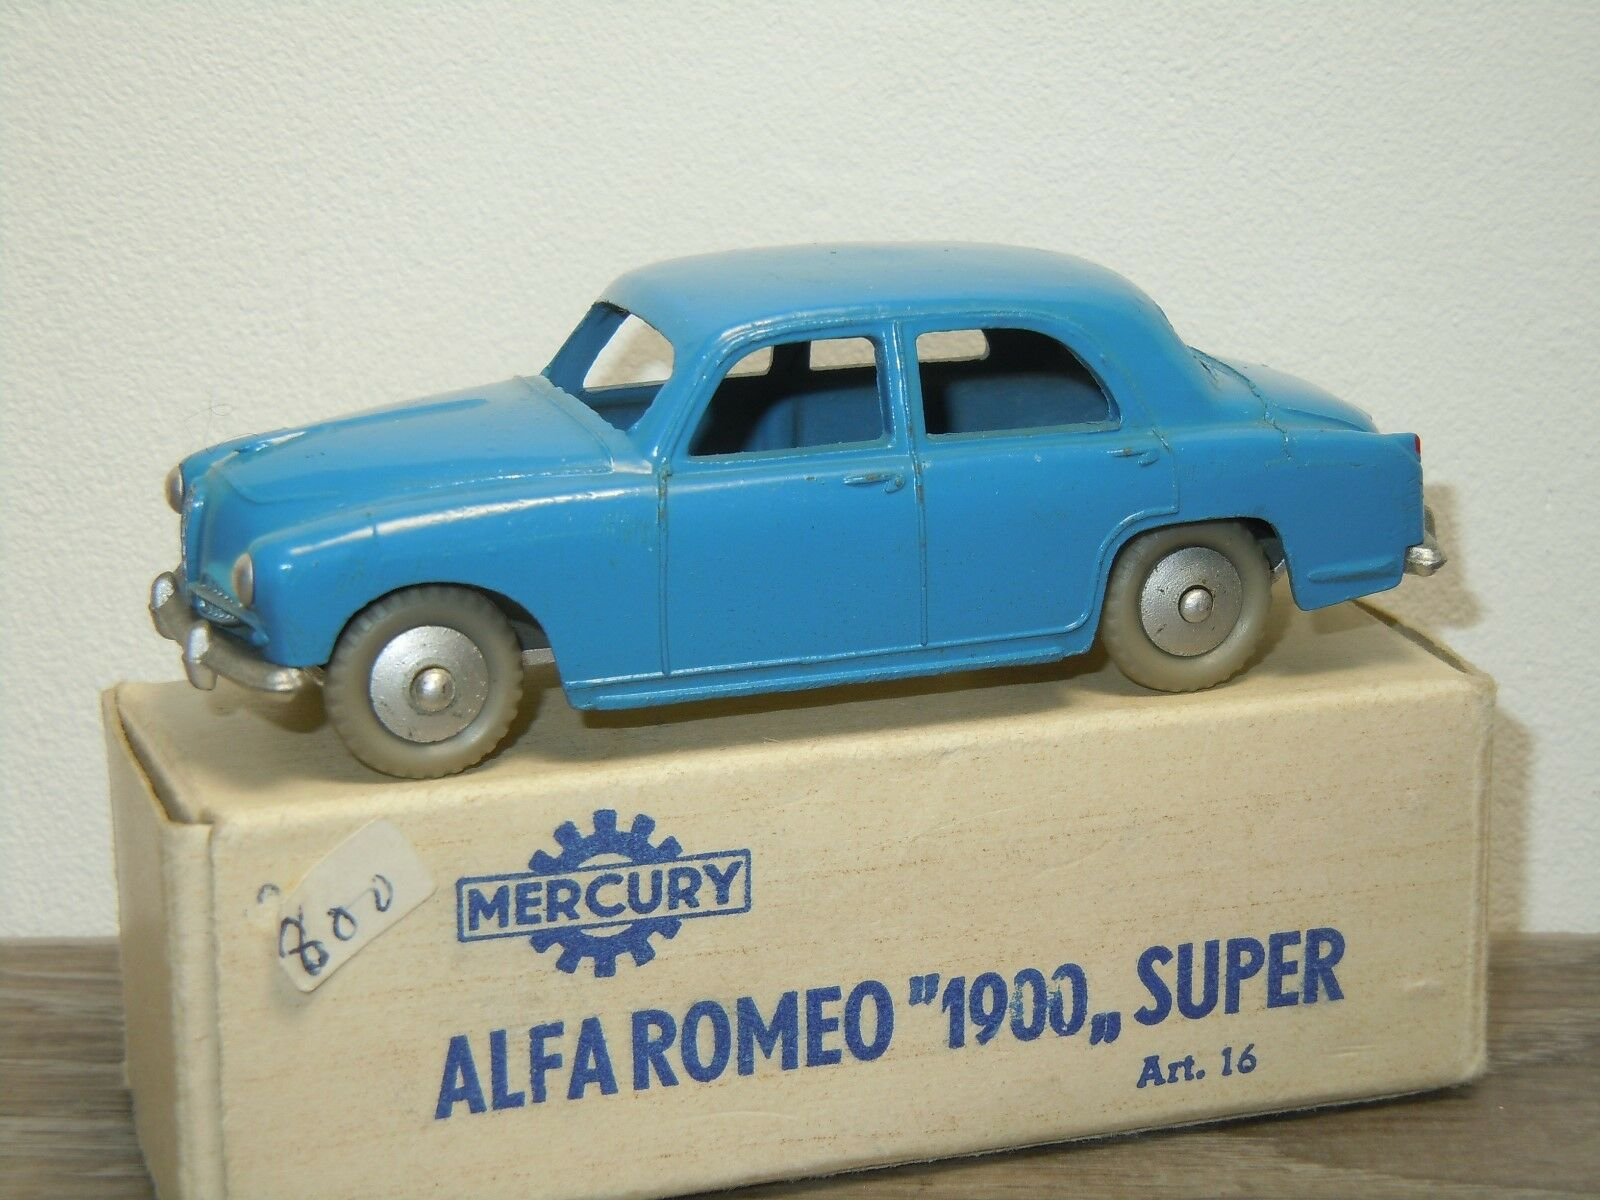 Alfa Romeo 1900 Super - Mercury 16  in Box 33037